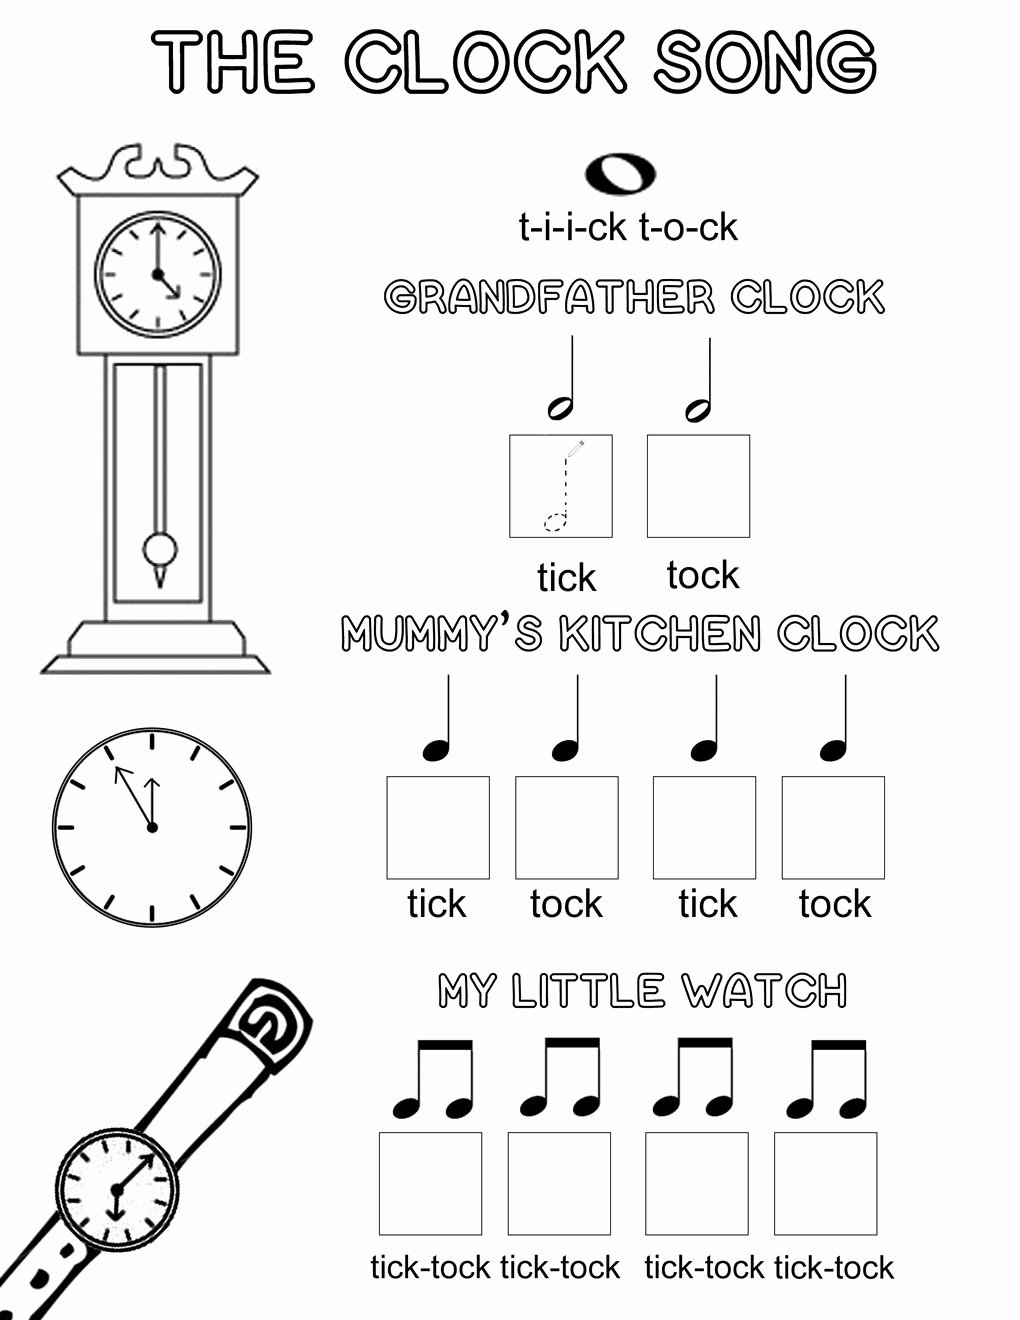 Printable Music Worksheets for Preschoolers Best Of the Clock song An Easy Way to Learn Musical Note Values